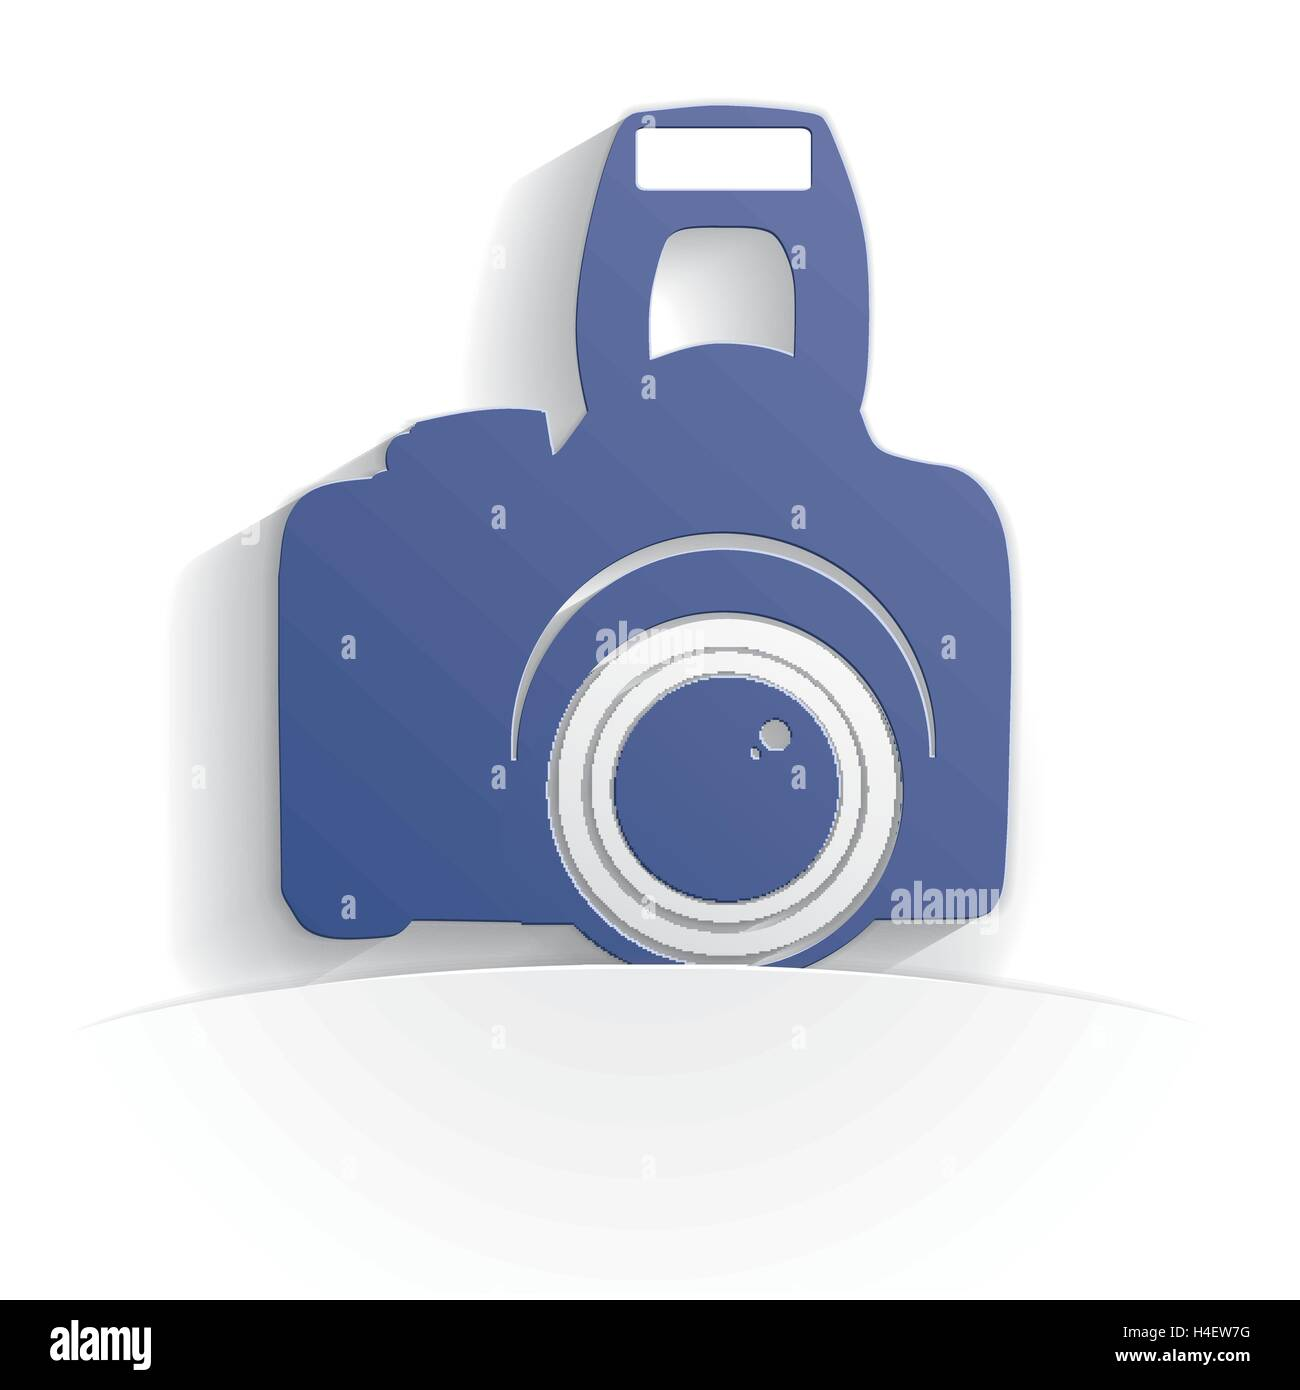 camera icon paper style full vector - Stock Vector